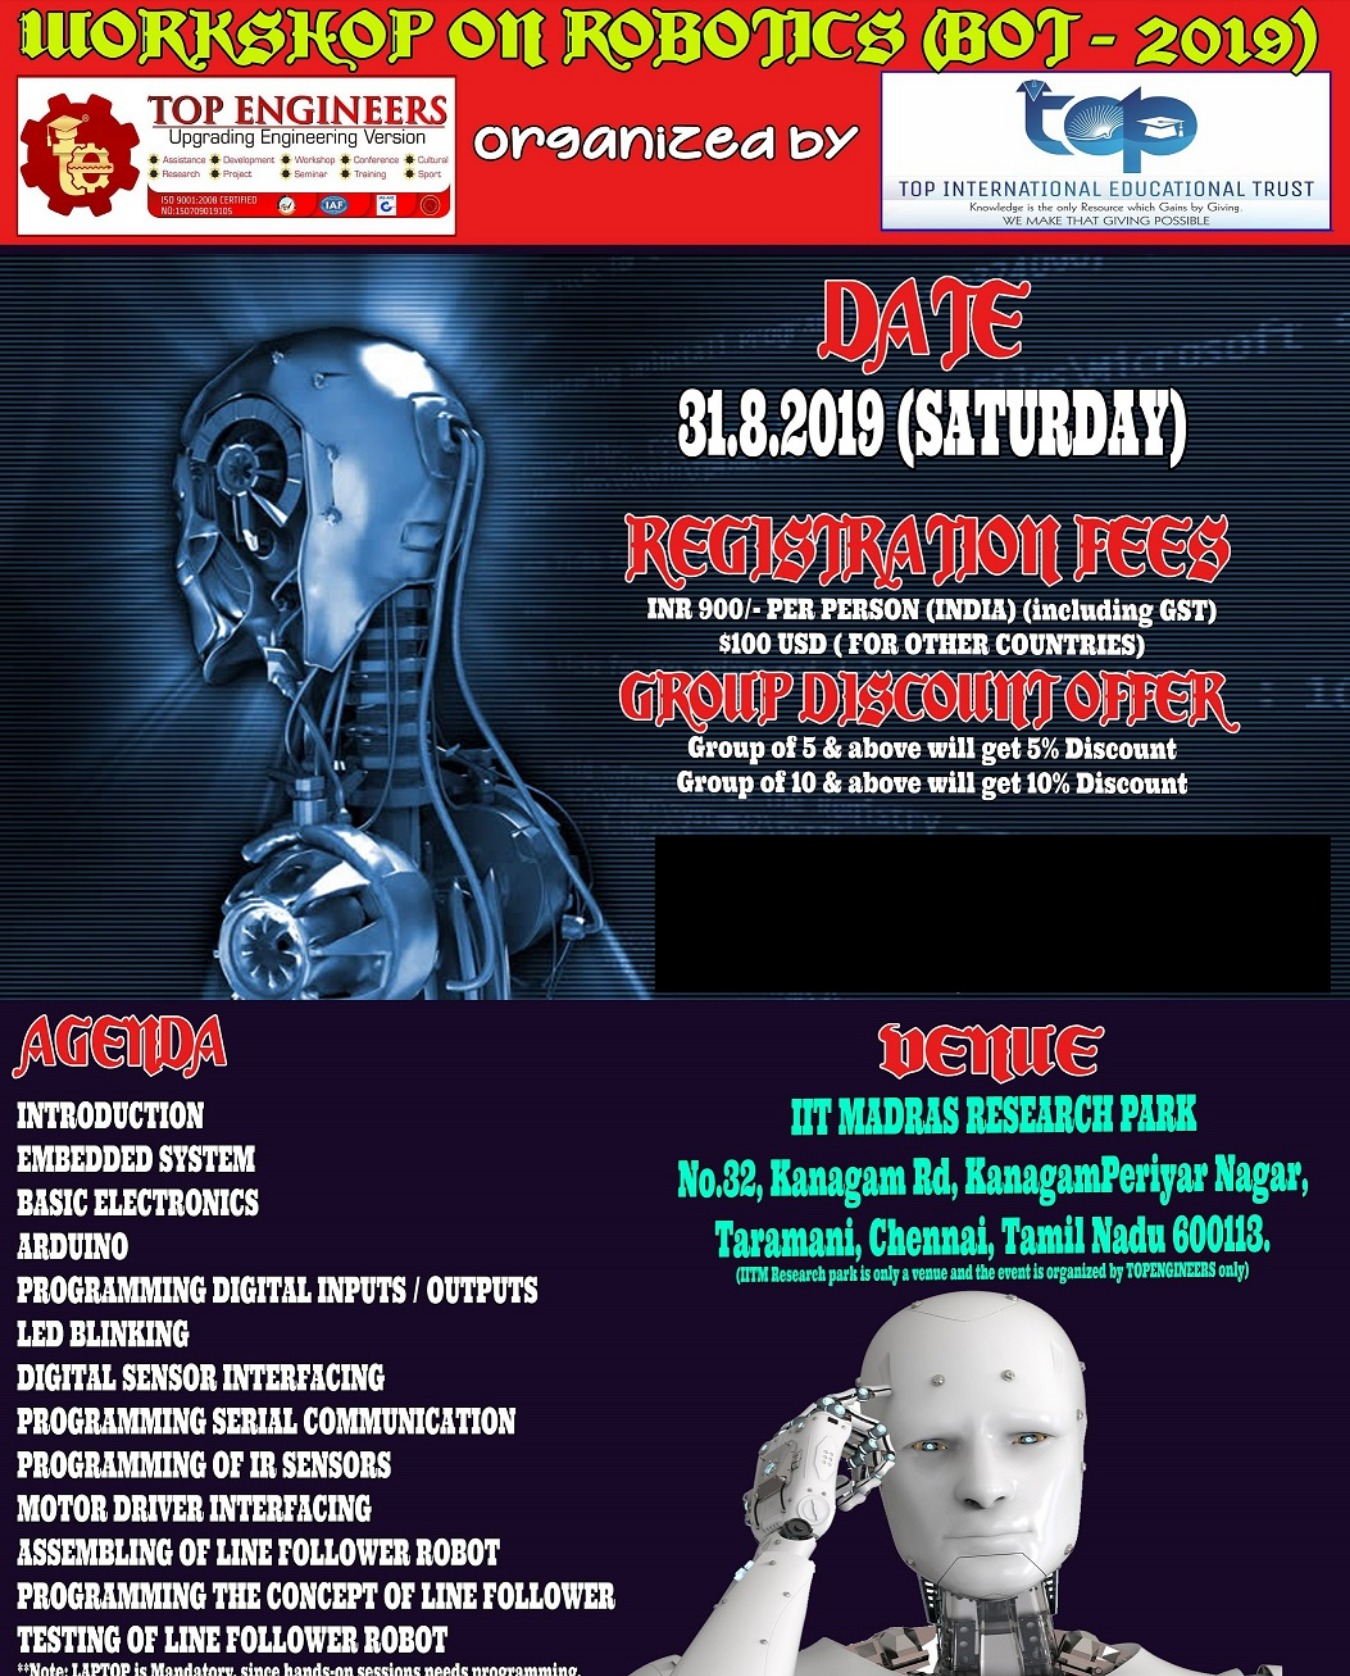 WORKSHOP ON ROBOTICS (BOT - 2019) Tickets by Ercess Live, 31 Aug, 2019,  Chennai Event